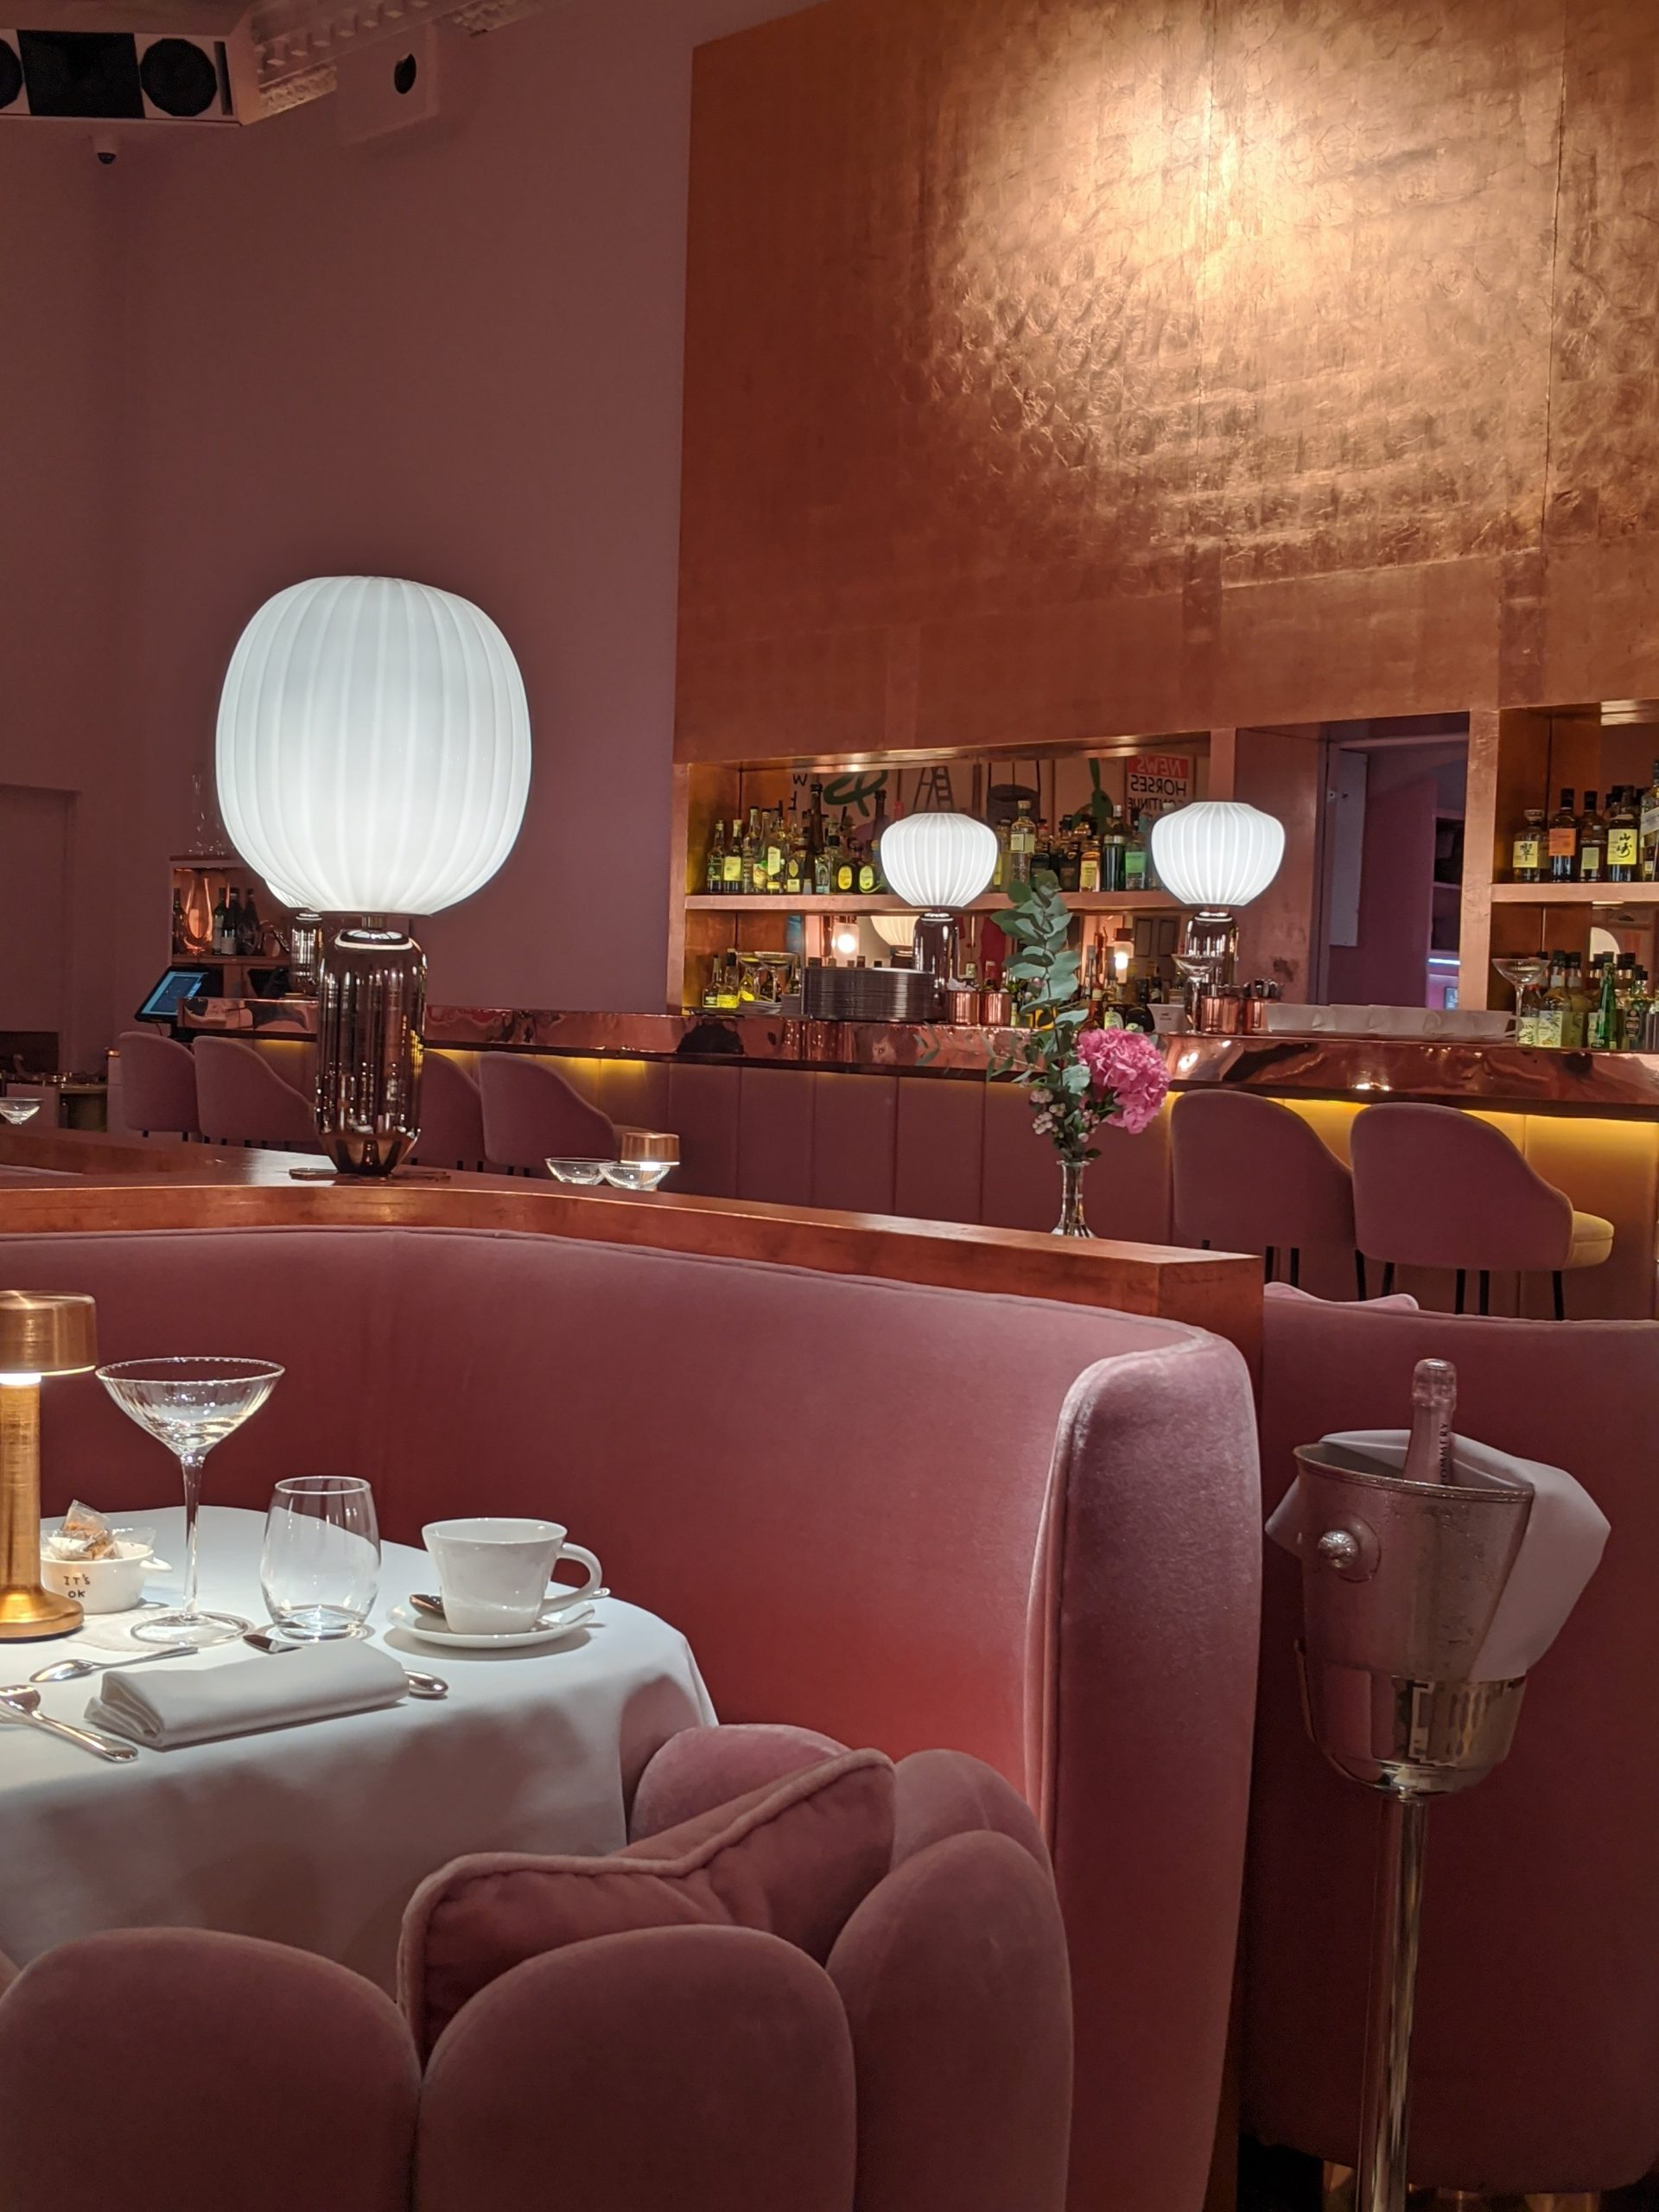 Sketch London- Afternoon Tea in the Pink Room